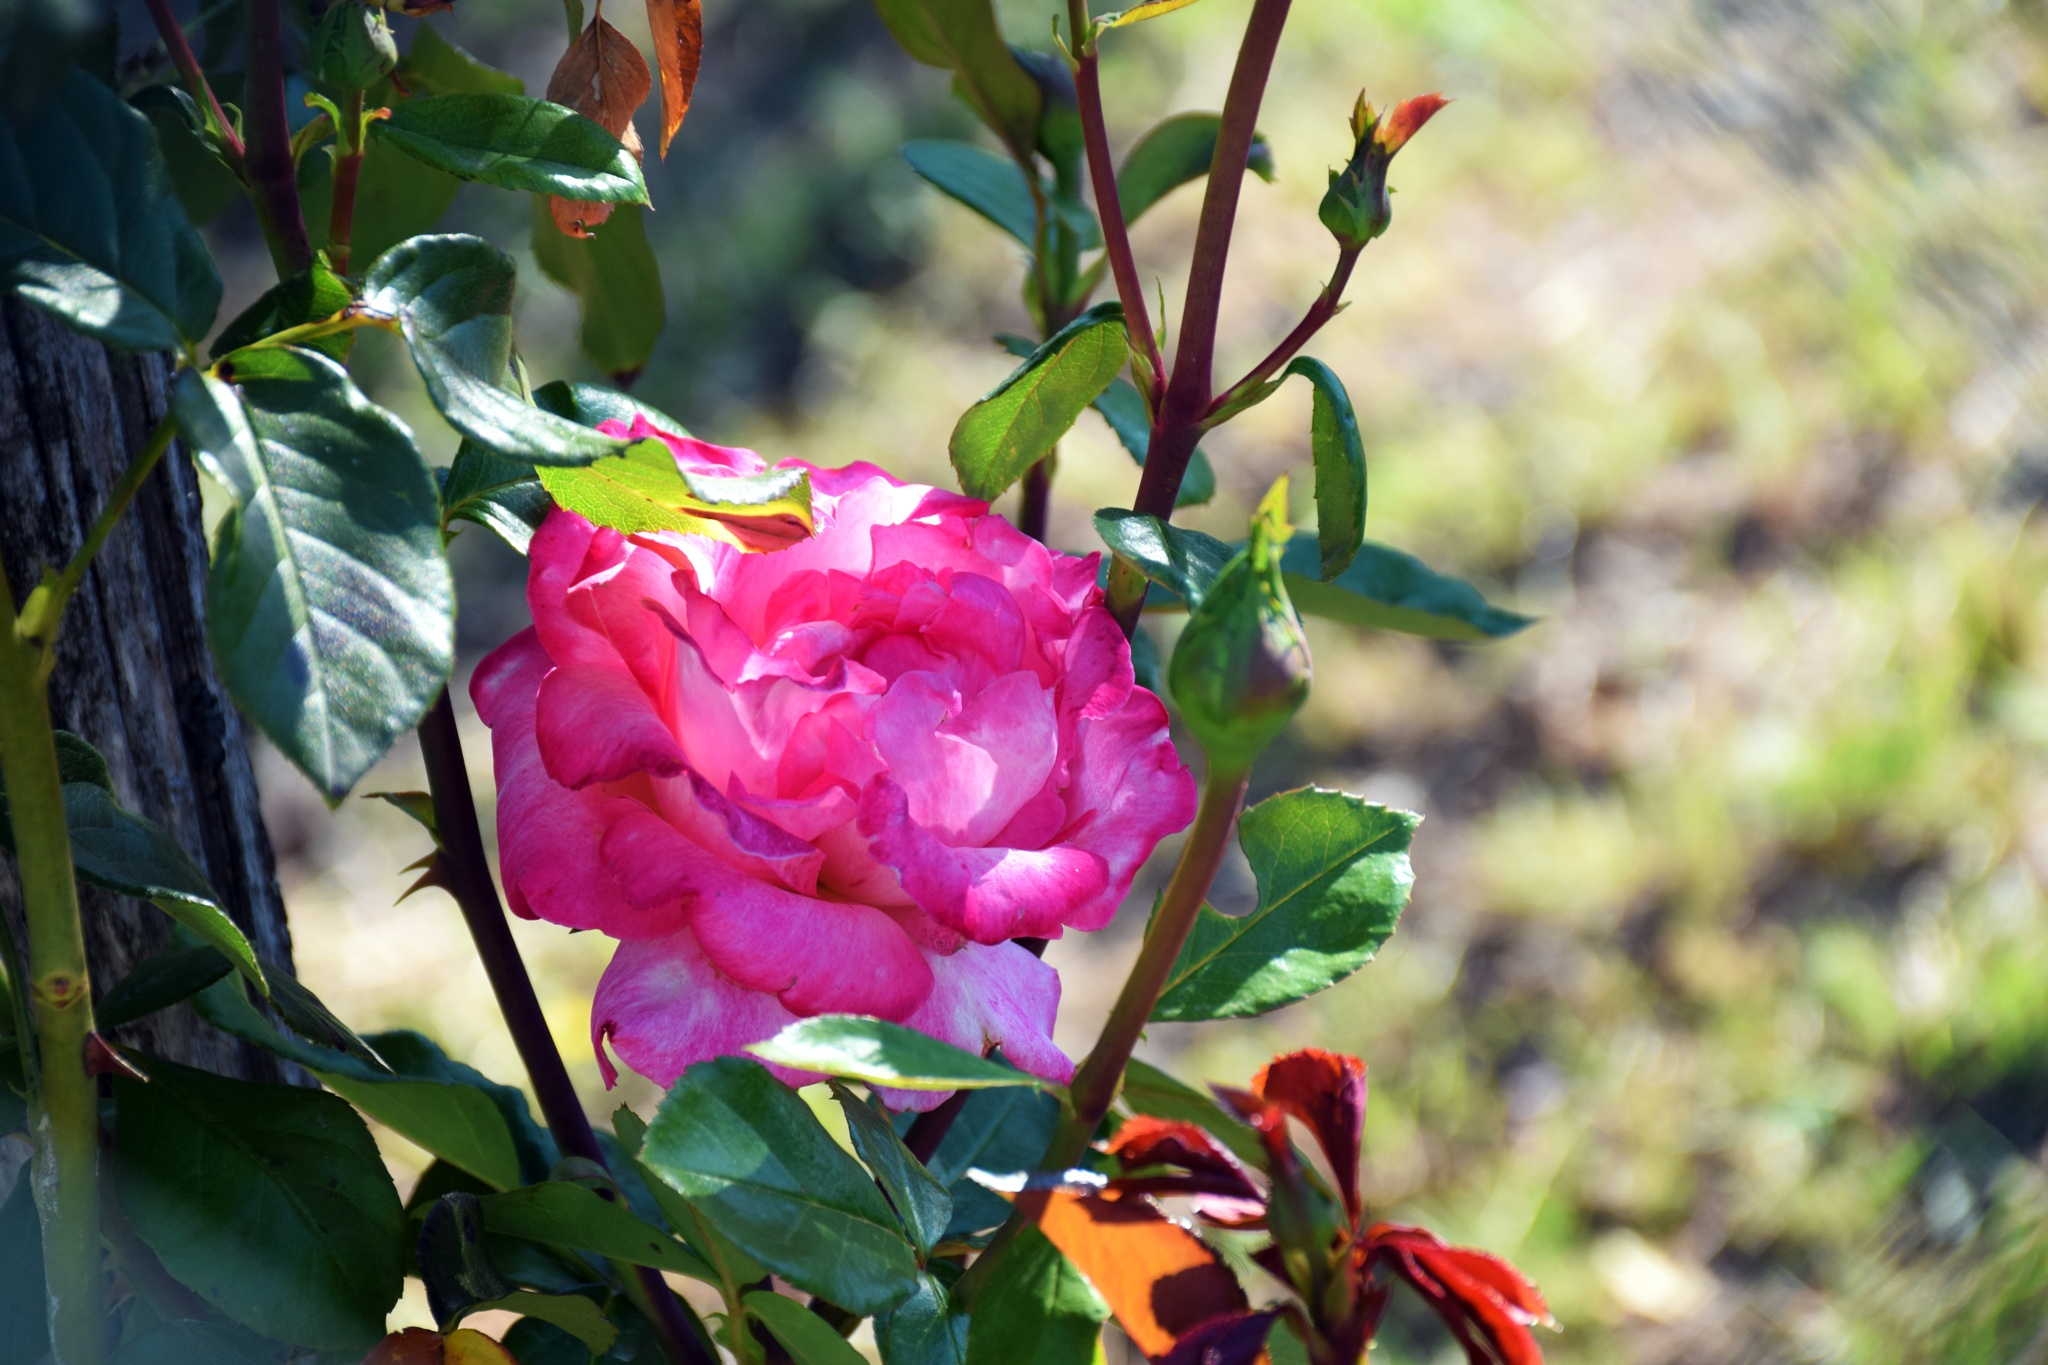 Rosa by peppe953